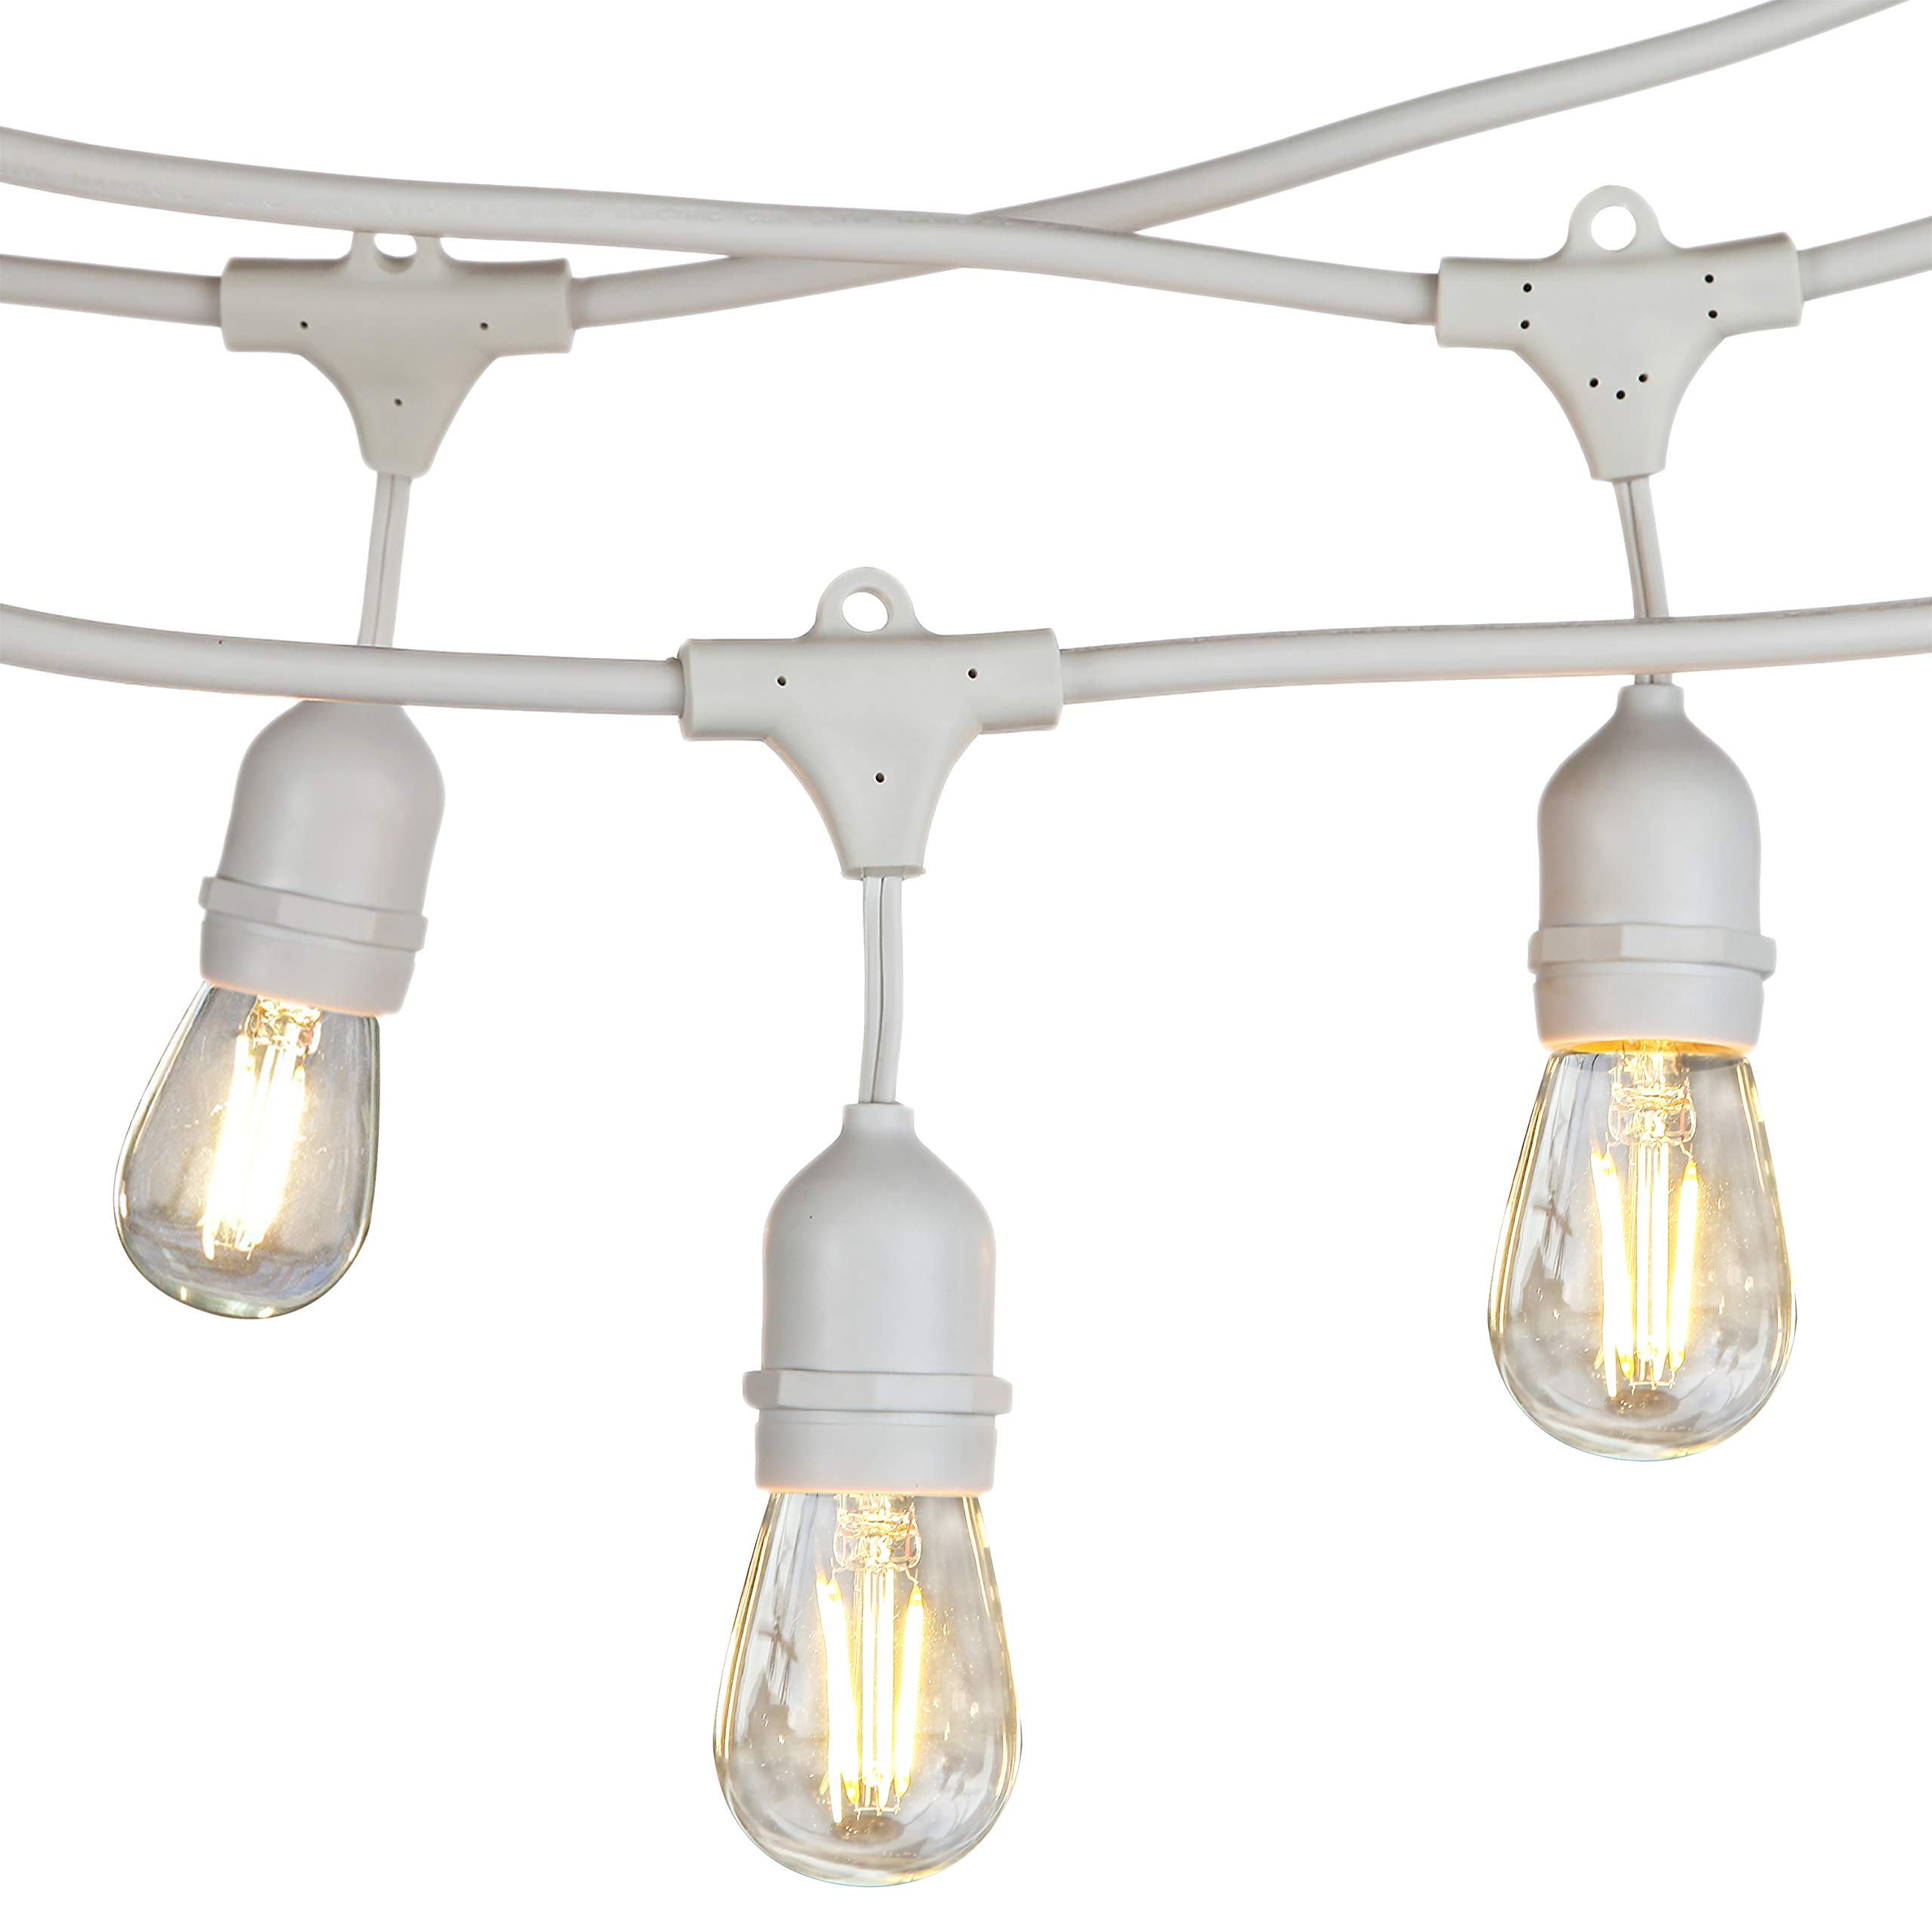 Brightech Ambience Pro LED Commercial Grade Waterproof Outdoor String Lights -Weatherproof Hanging Edison Vintage Filament Bulbs/Patio Lighting- Dimmable 2W 48 Ft Cafe Bistro Lights -WHT by Brightech